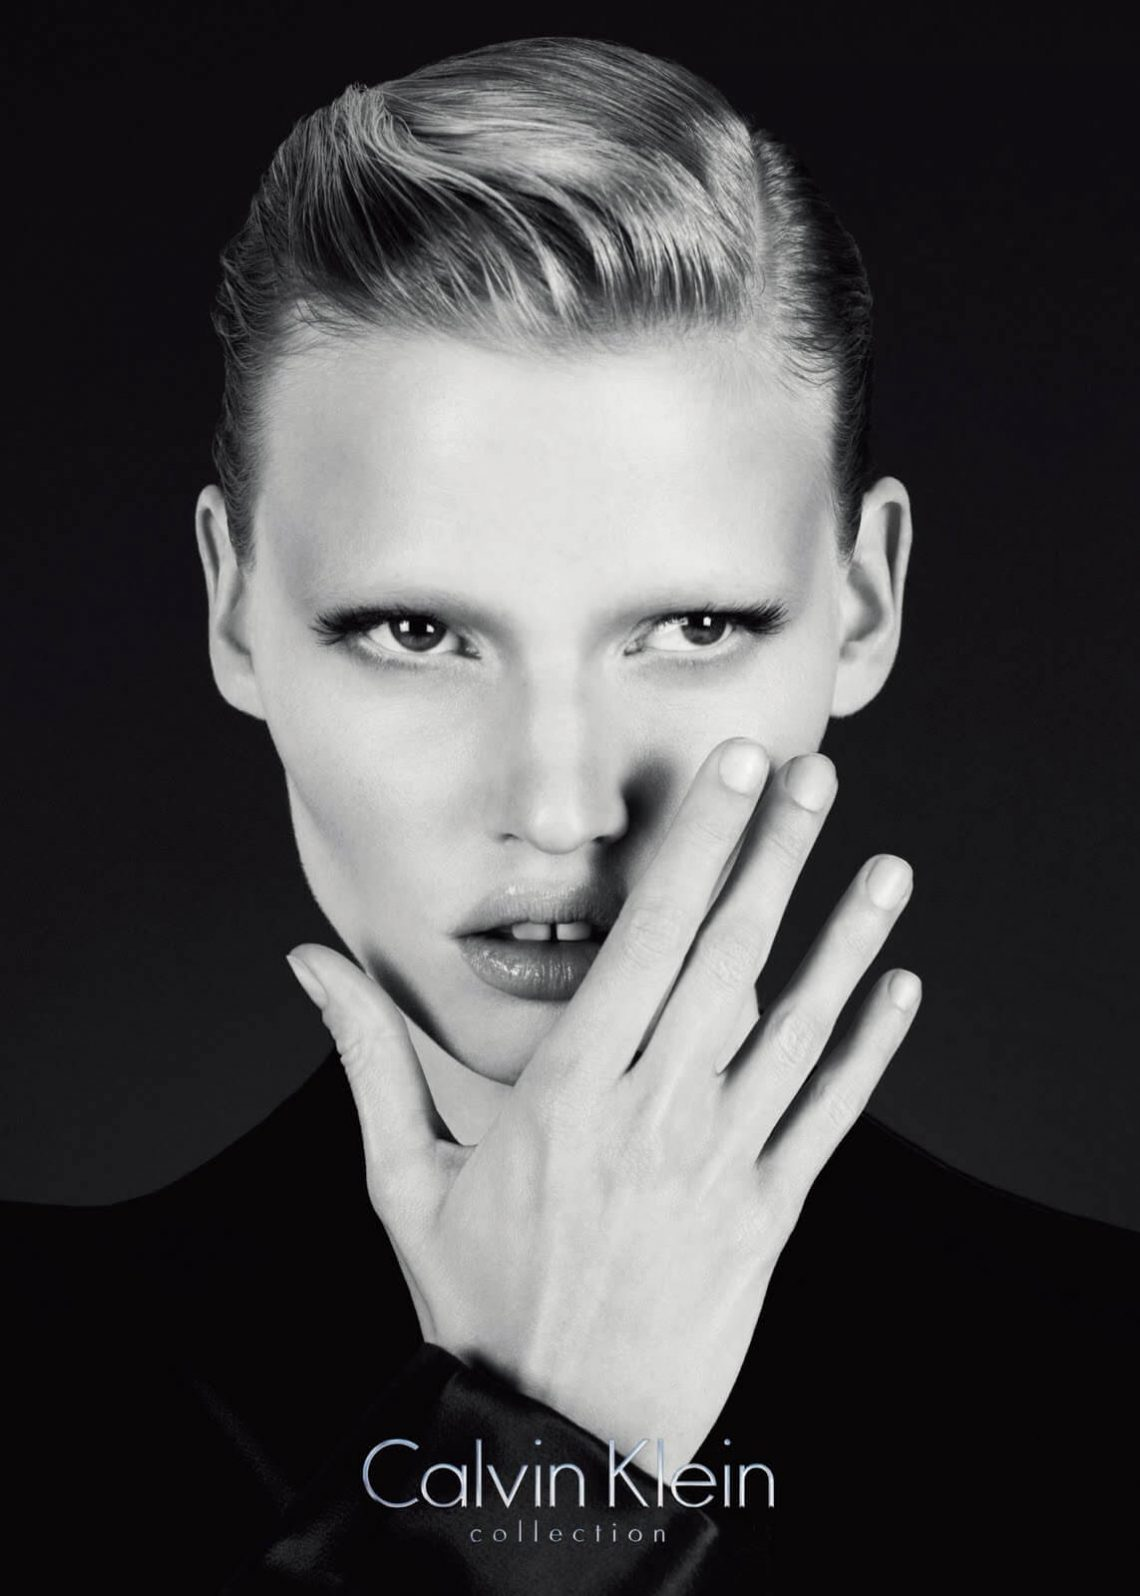 Mintsquare_fashion_Lara Stone, the new face for Calvin Klein campaign 2010